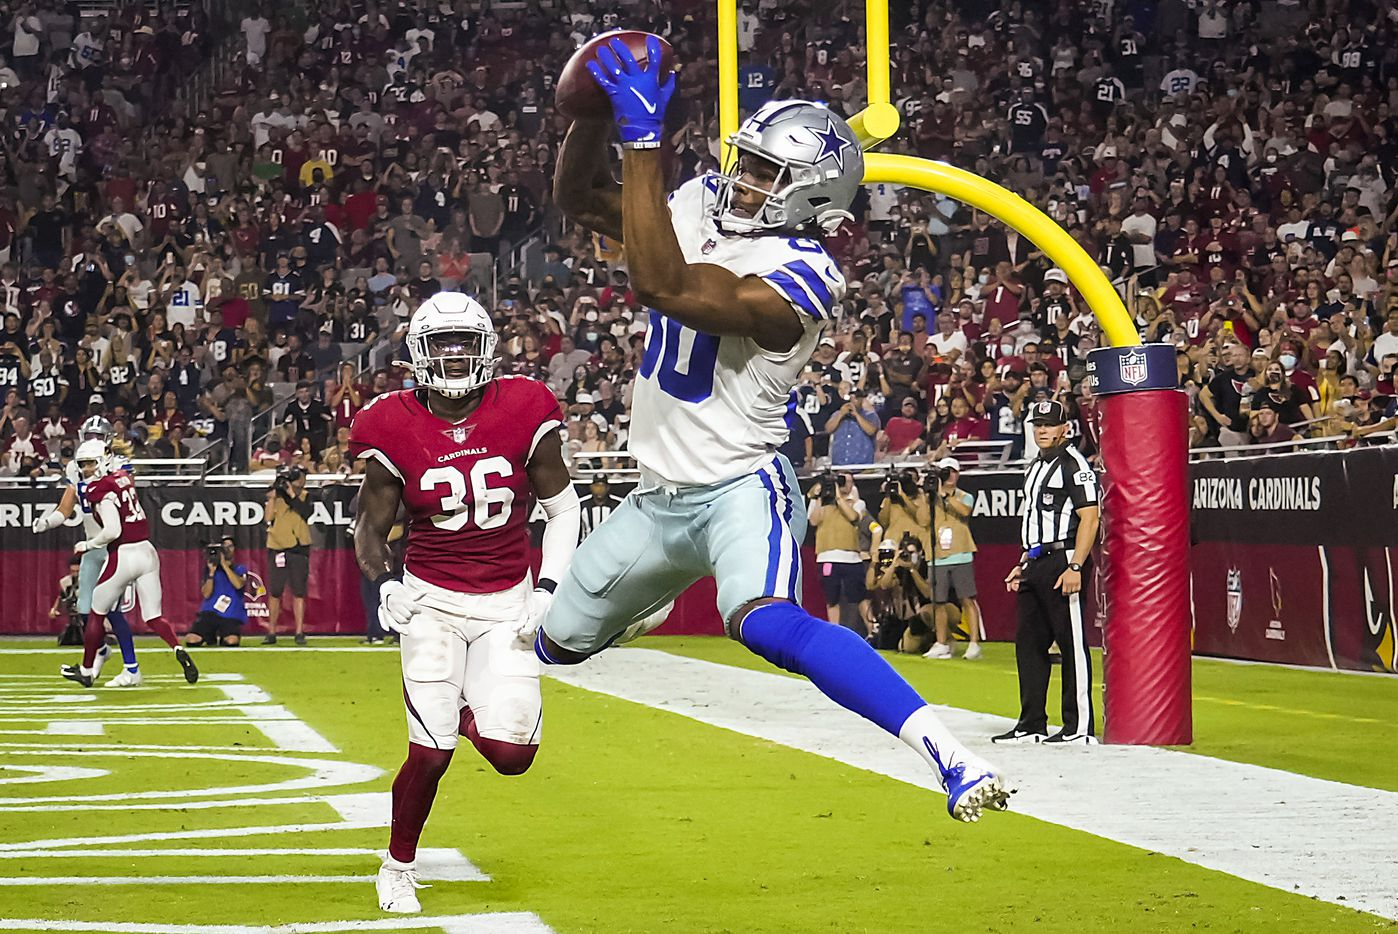 Dallas Cowboys wide receiver Brandon Smith (80) catches a 1-yard touchdown pass from quarterback Ben DiNucci as Arizona Cardinals safety Shawn Williams (36) defends during the second half of a preseason NFL football game at State Farm Stadium on Friday, Aug. 13, 2021, in Glendale, Ariz.